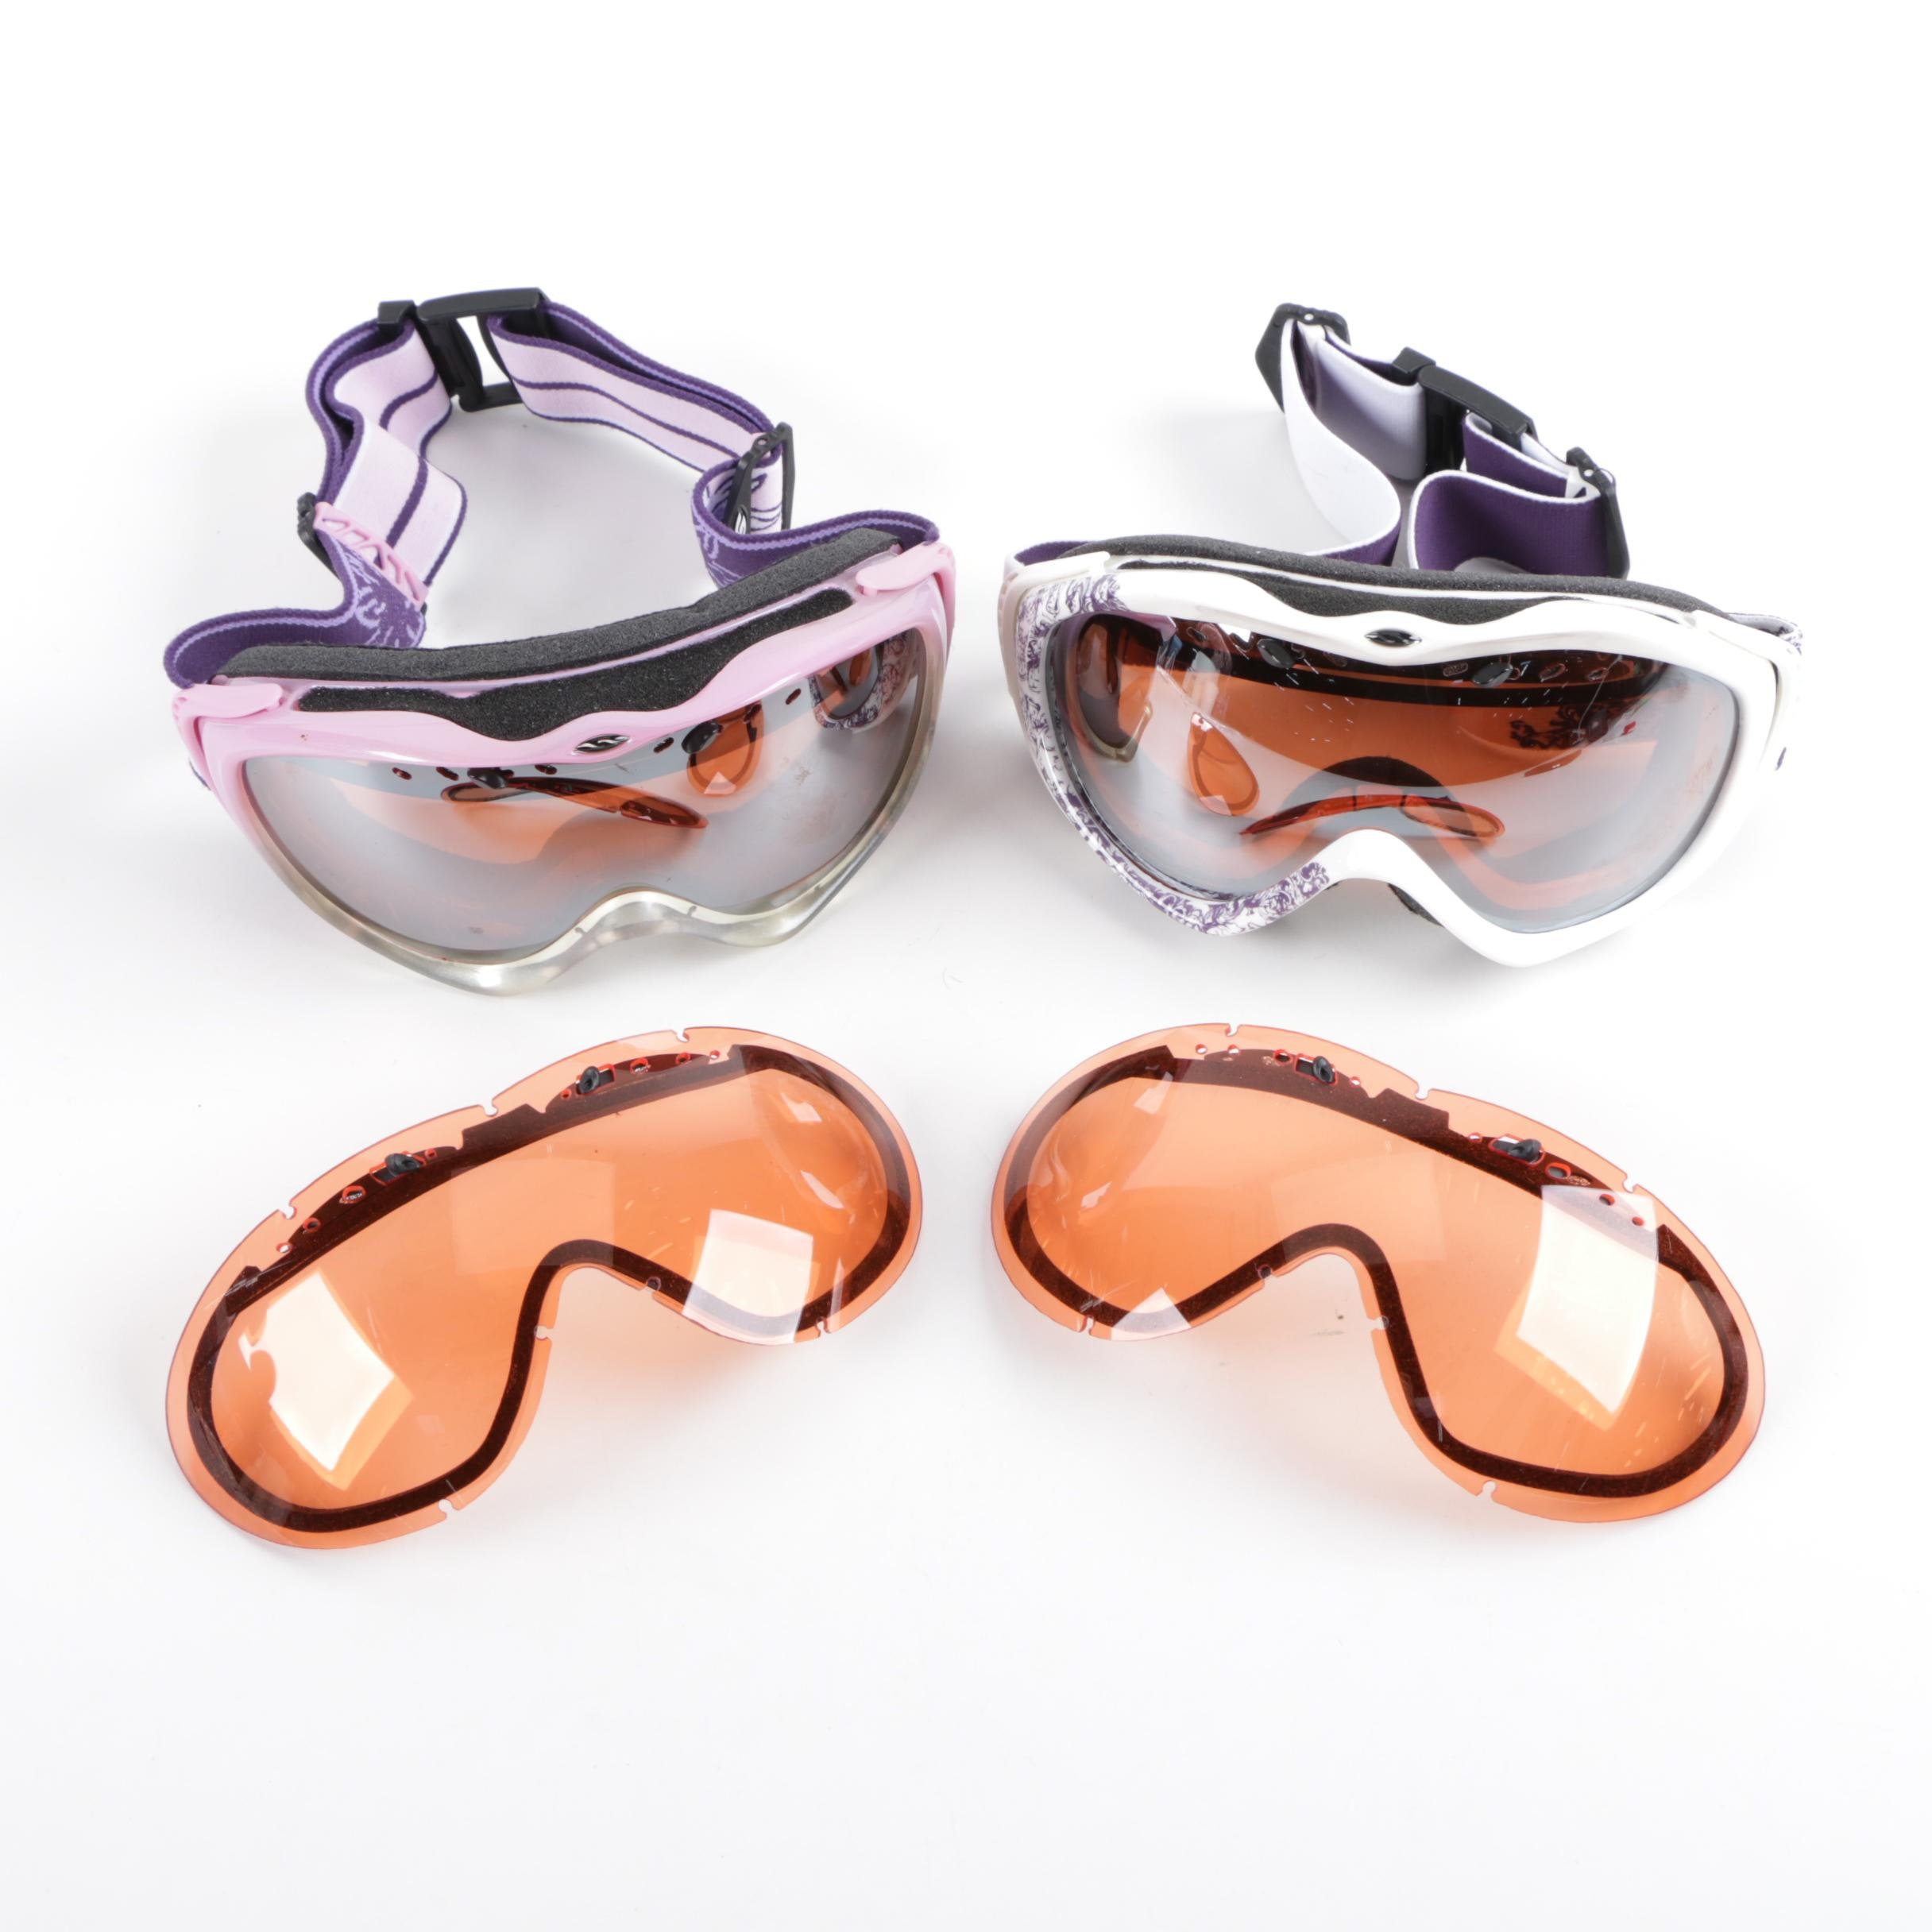 Women's Ski Goggles and Replacement Lenses